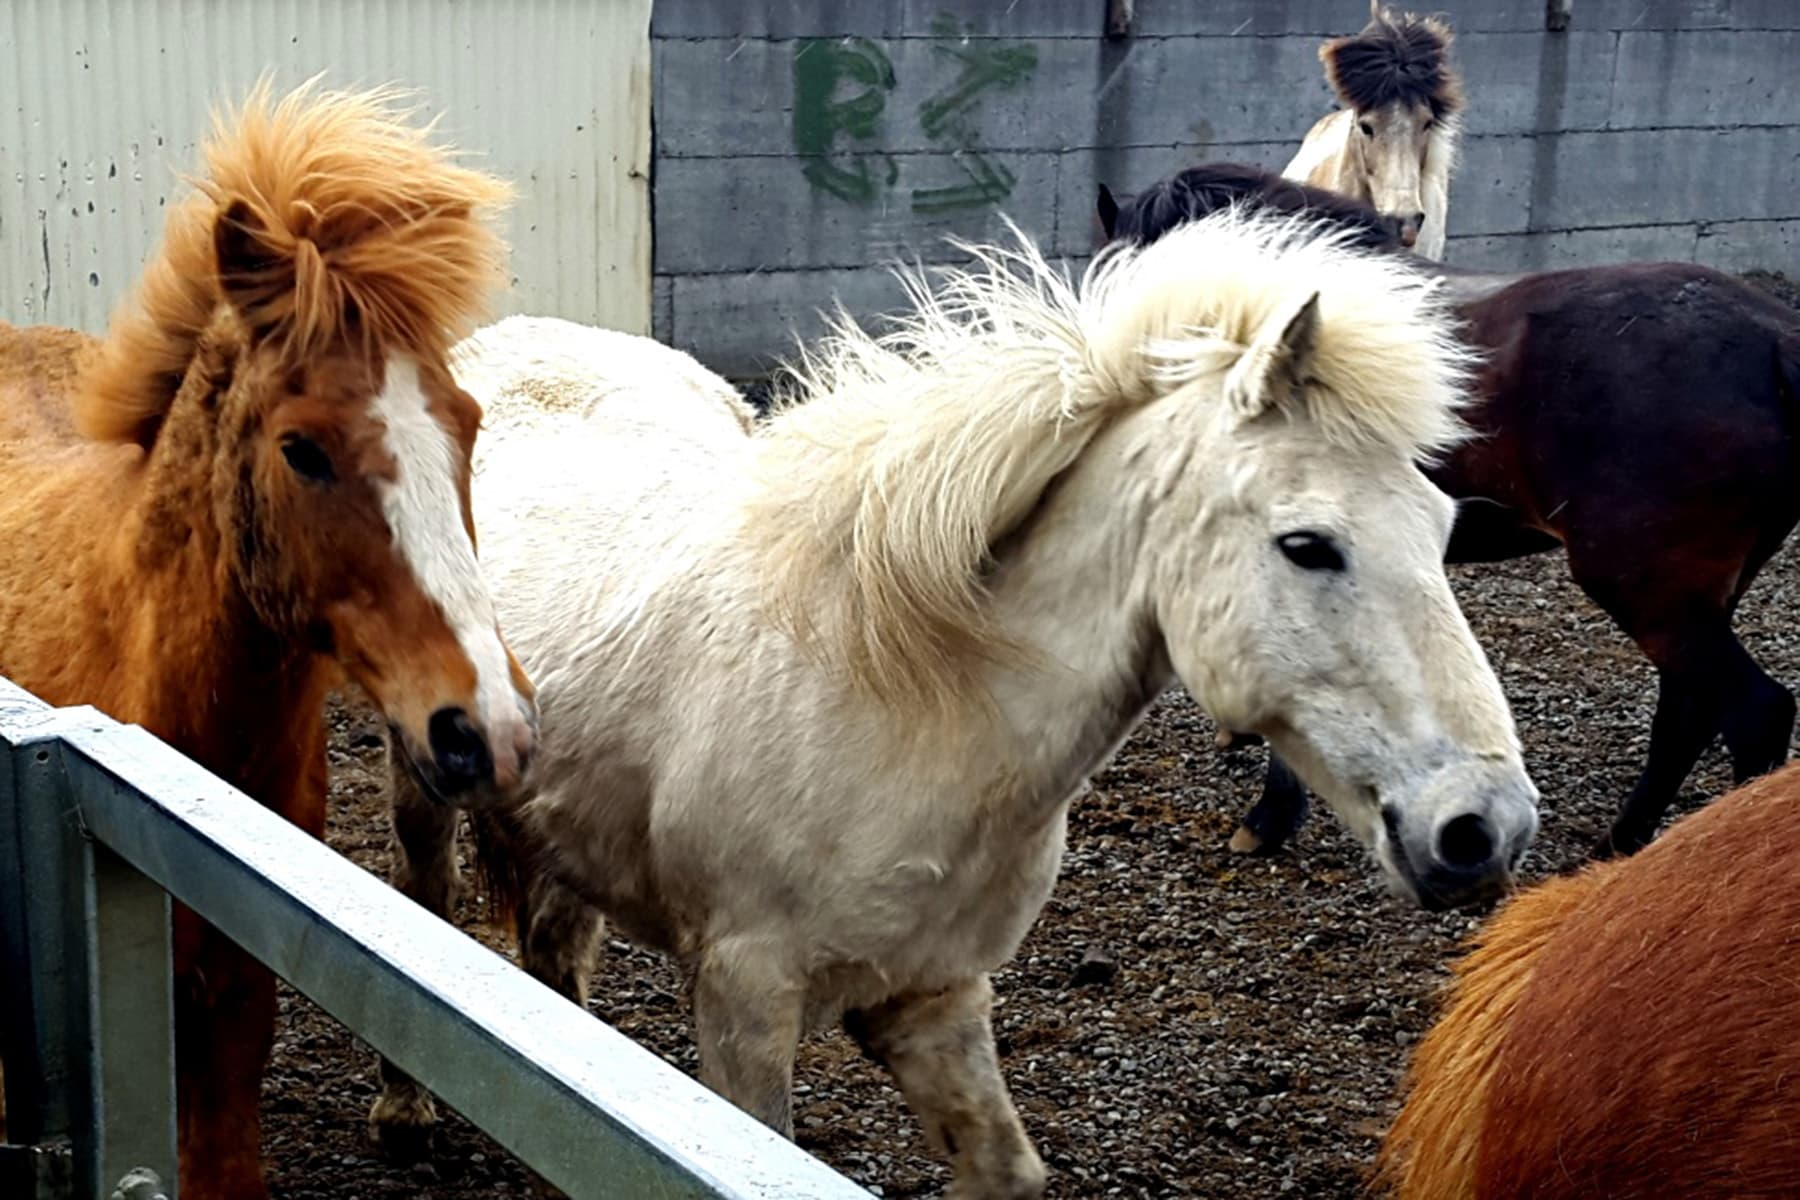 Viking horses are the only breed of horses allowed in Iceland. Once a horse leaves, he cannot be brought back. Over centuries, Viking horses have adapted to the island's versatile terrain.